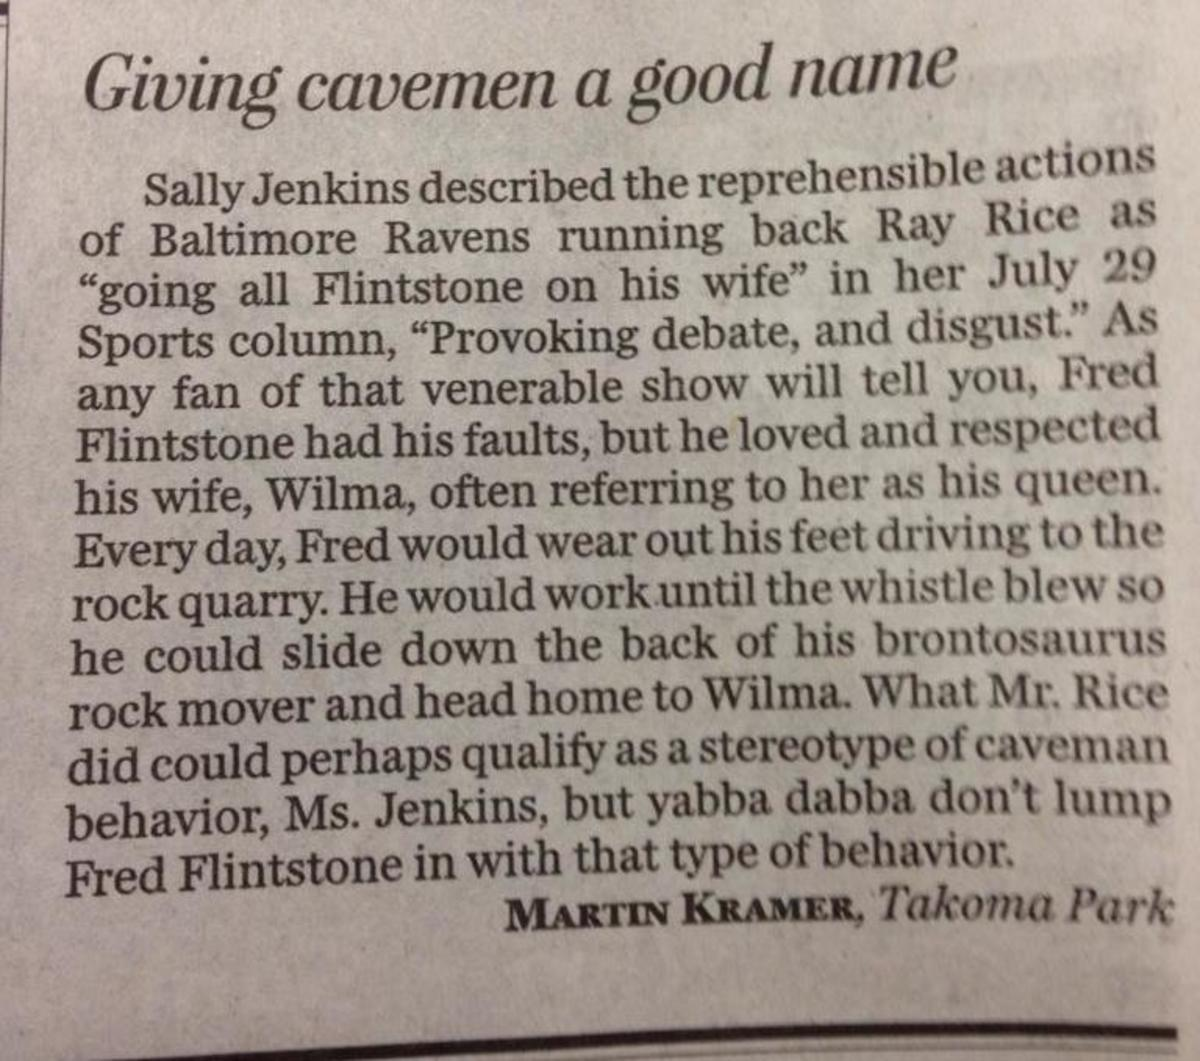 Letter to the editor objects to Fred Flinstone being compared to Ray Rice